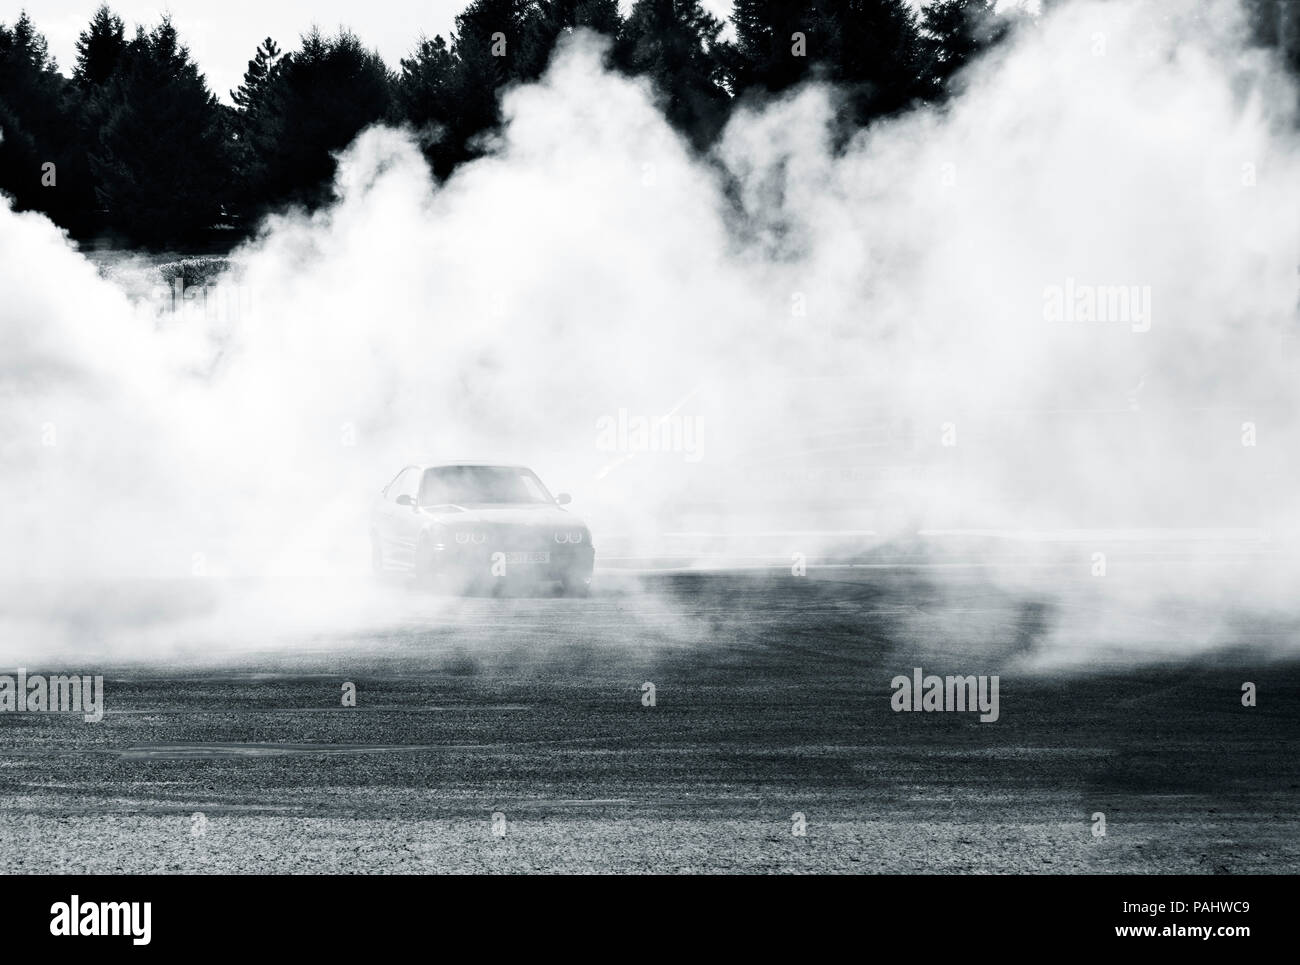 Muscle Car Drifting Stock Photos Muscle Car Drifting Stock Images